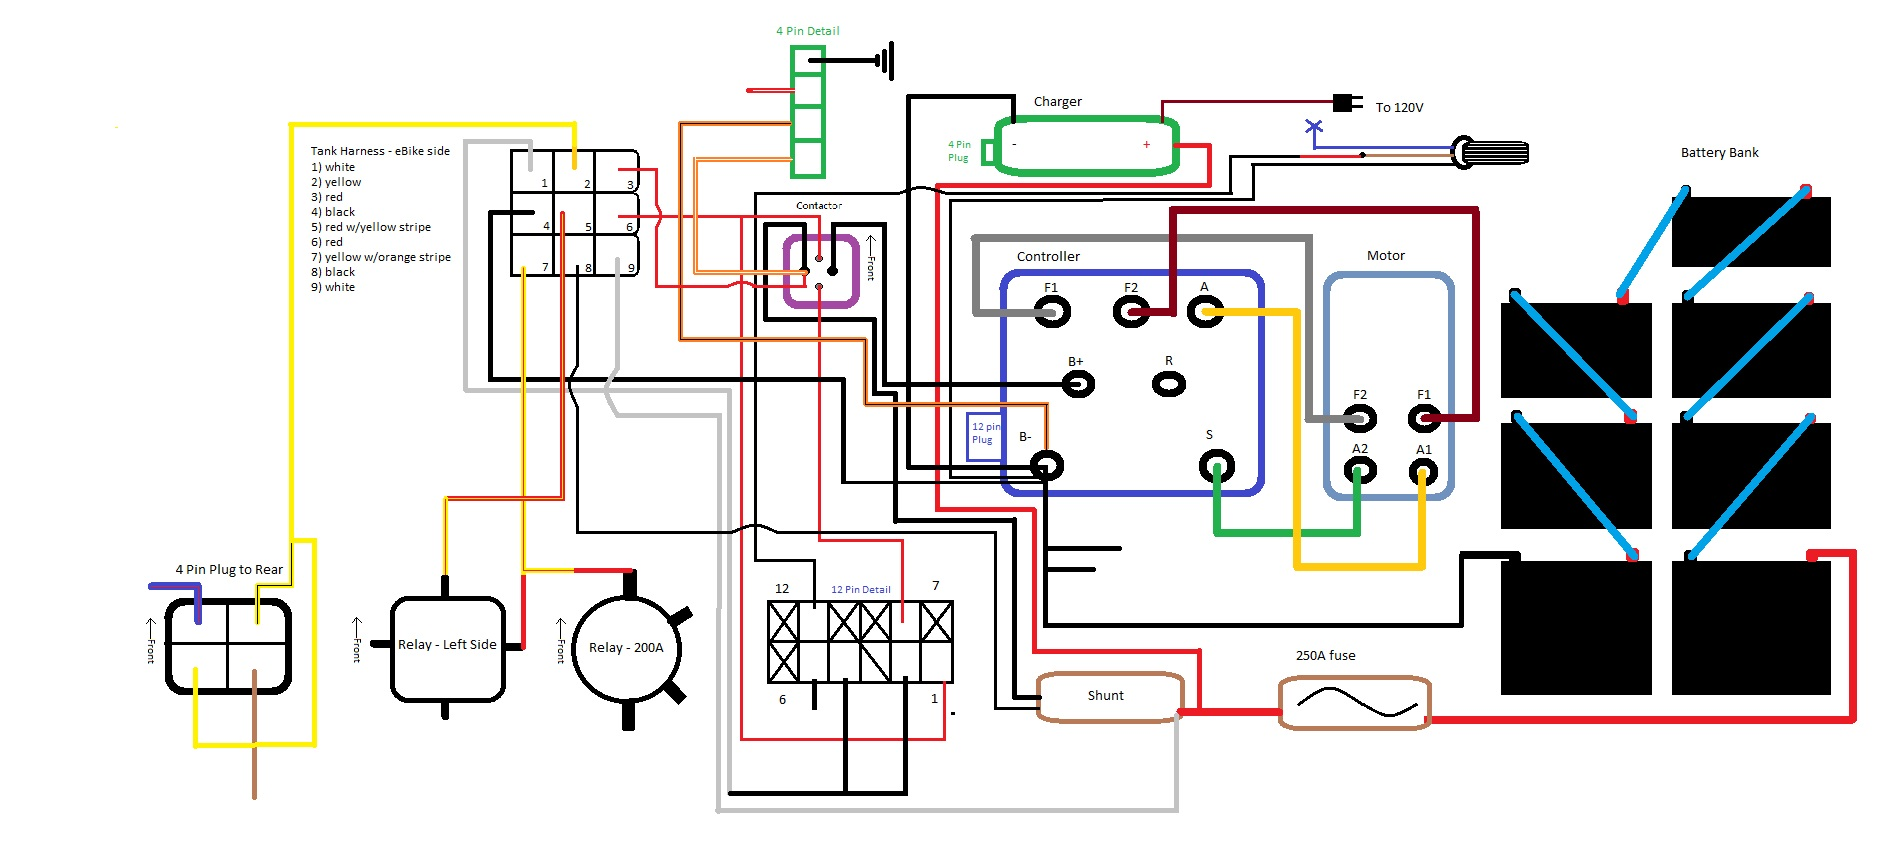 Razor Electric Scooter Electrical Diagram Ebike Wiring Diagram V2 College Project Ebikes